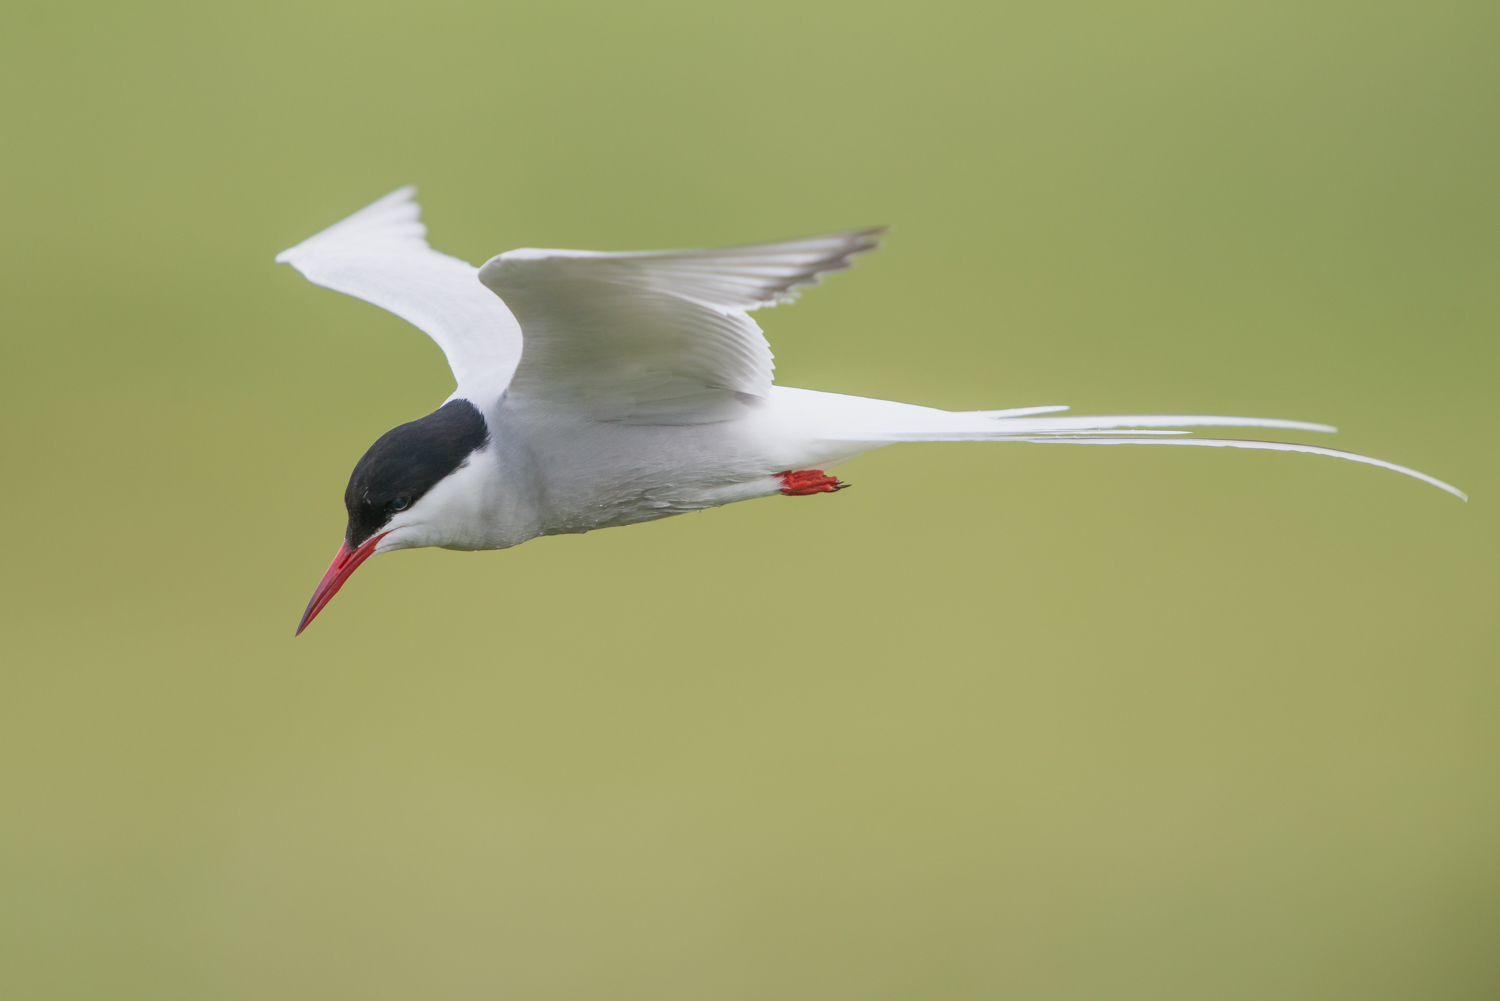 Arctic Tern, British birds, ocean birds, wildlife